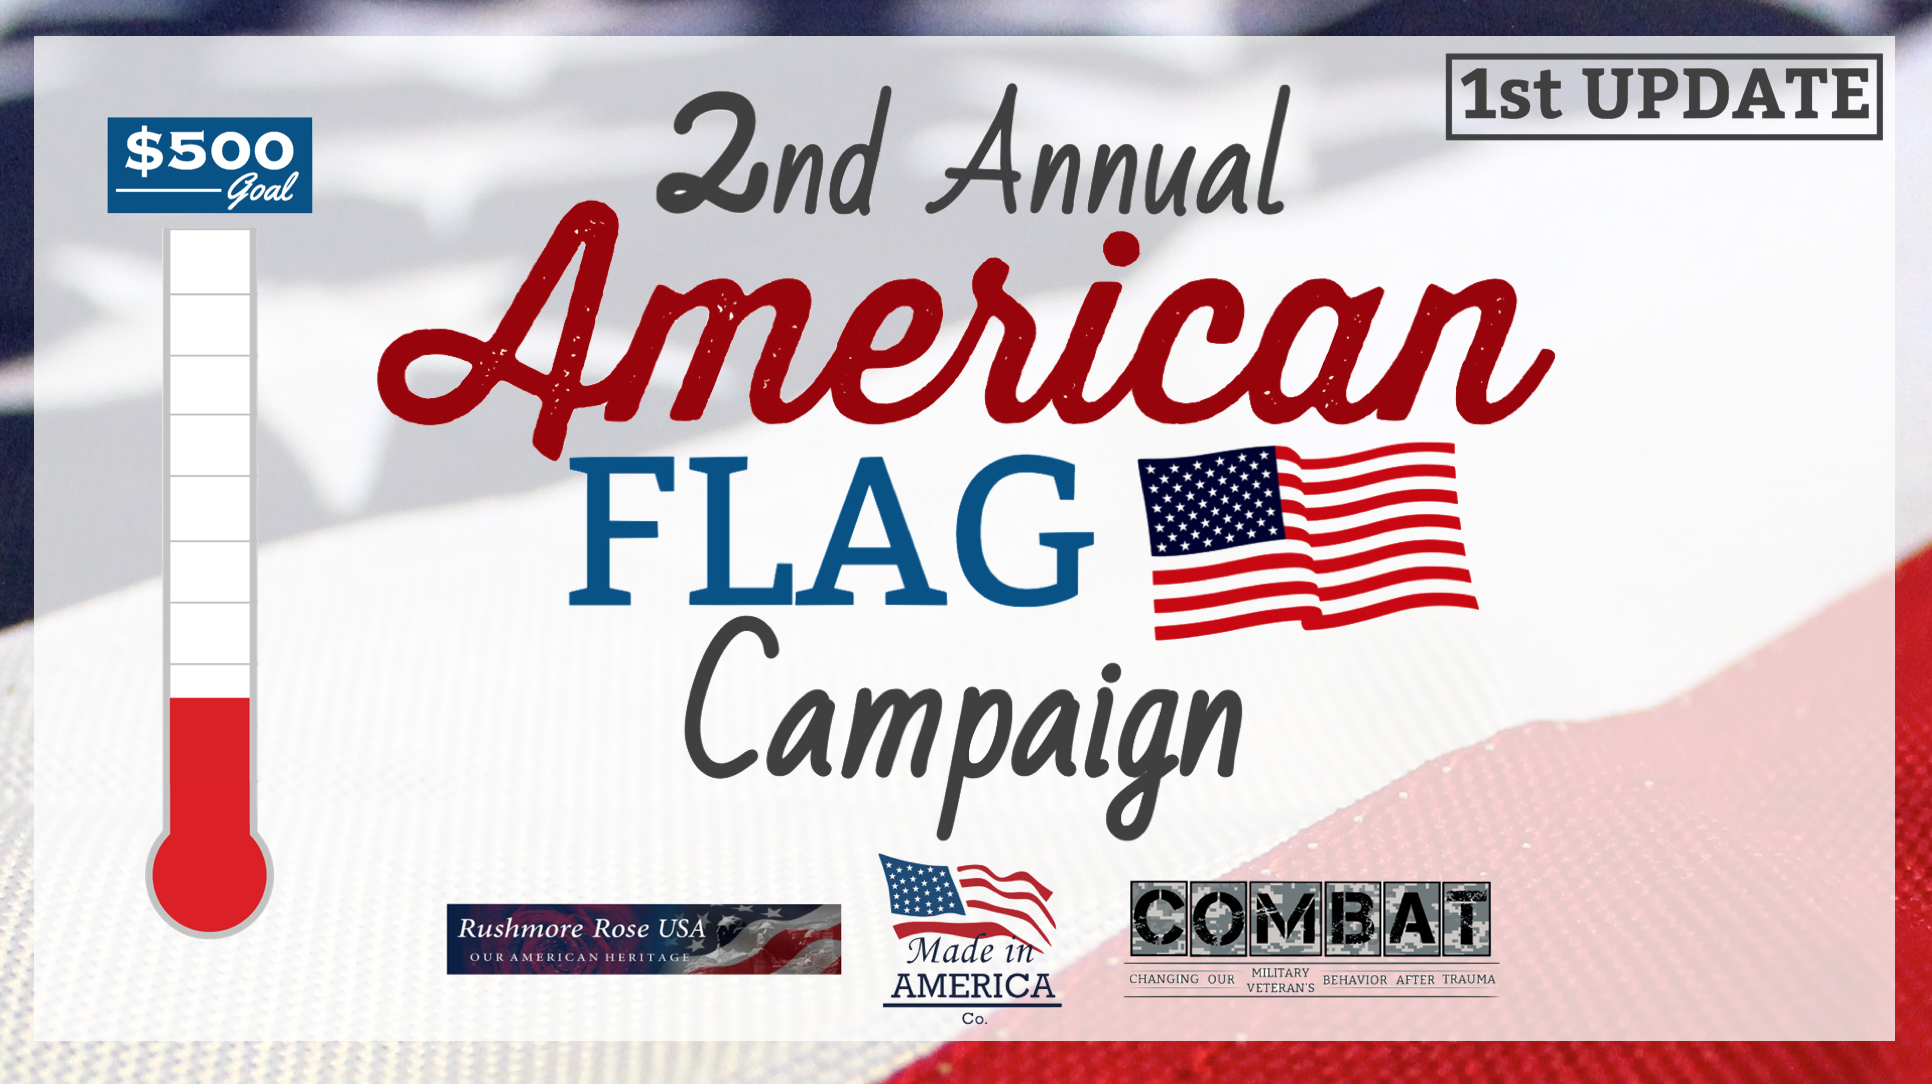 2nd Annual American Flag Campaign: 1st Update